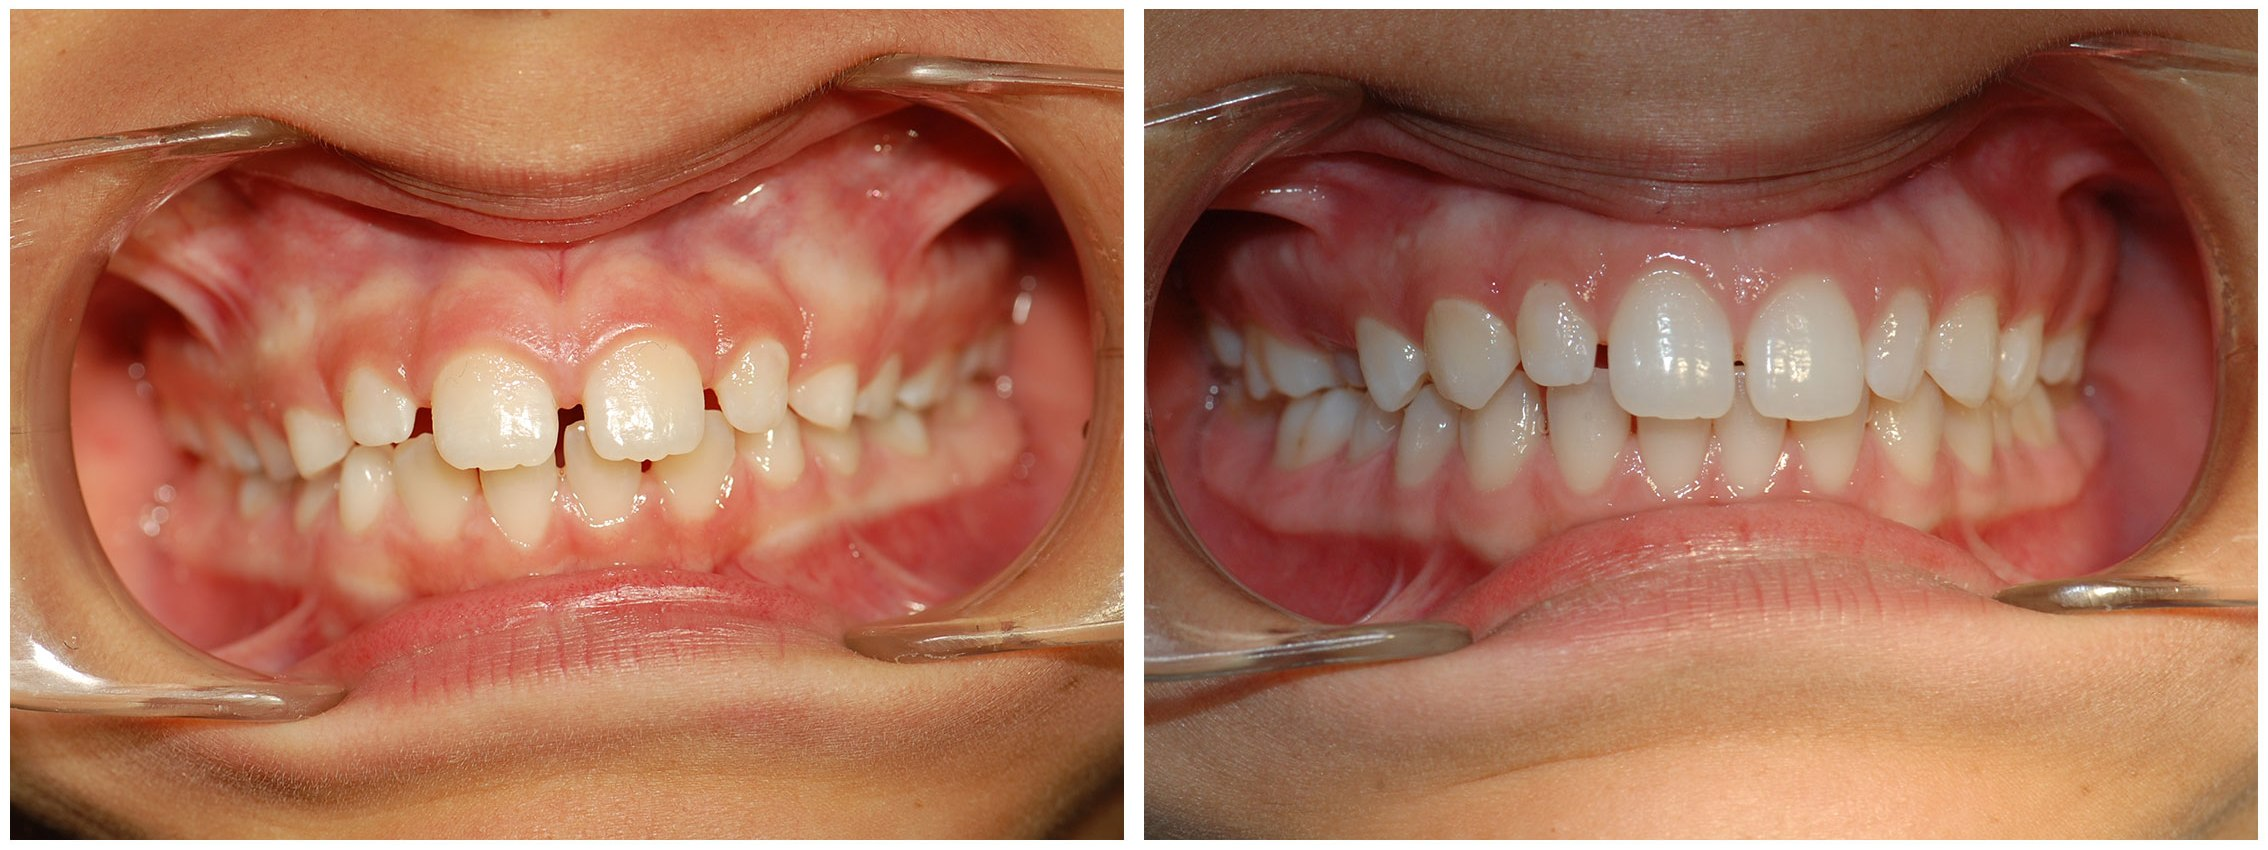 Pediatric Dental Braces Treatment Before & After